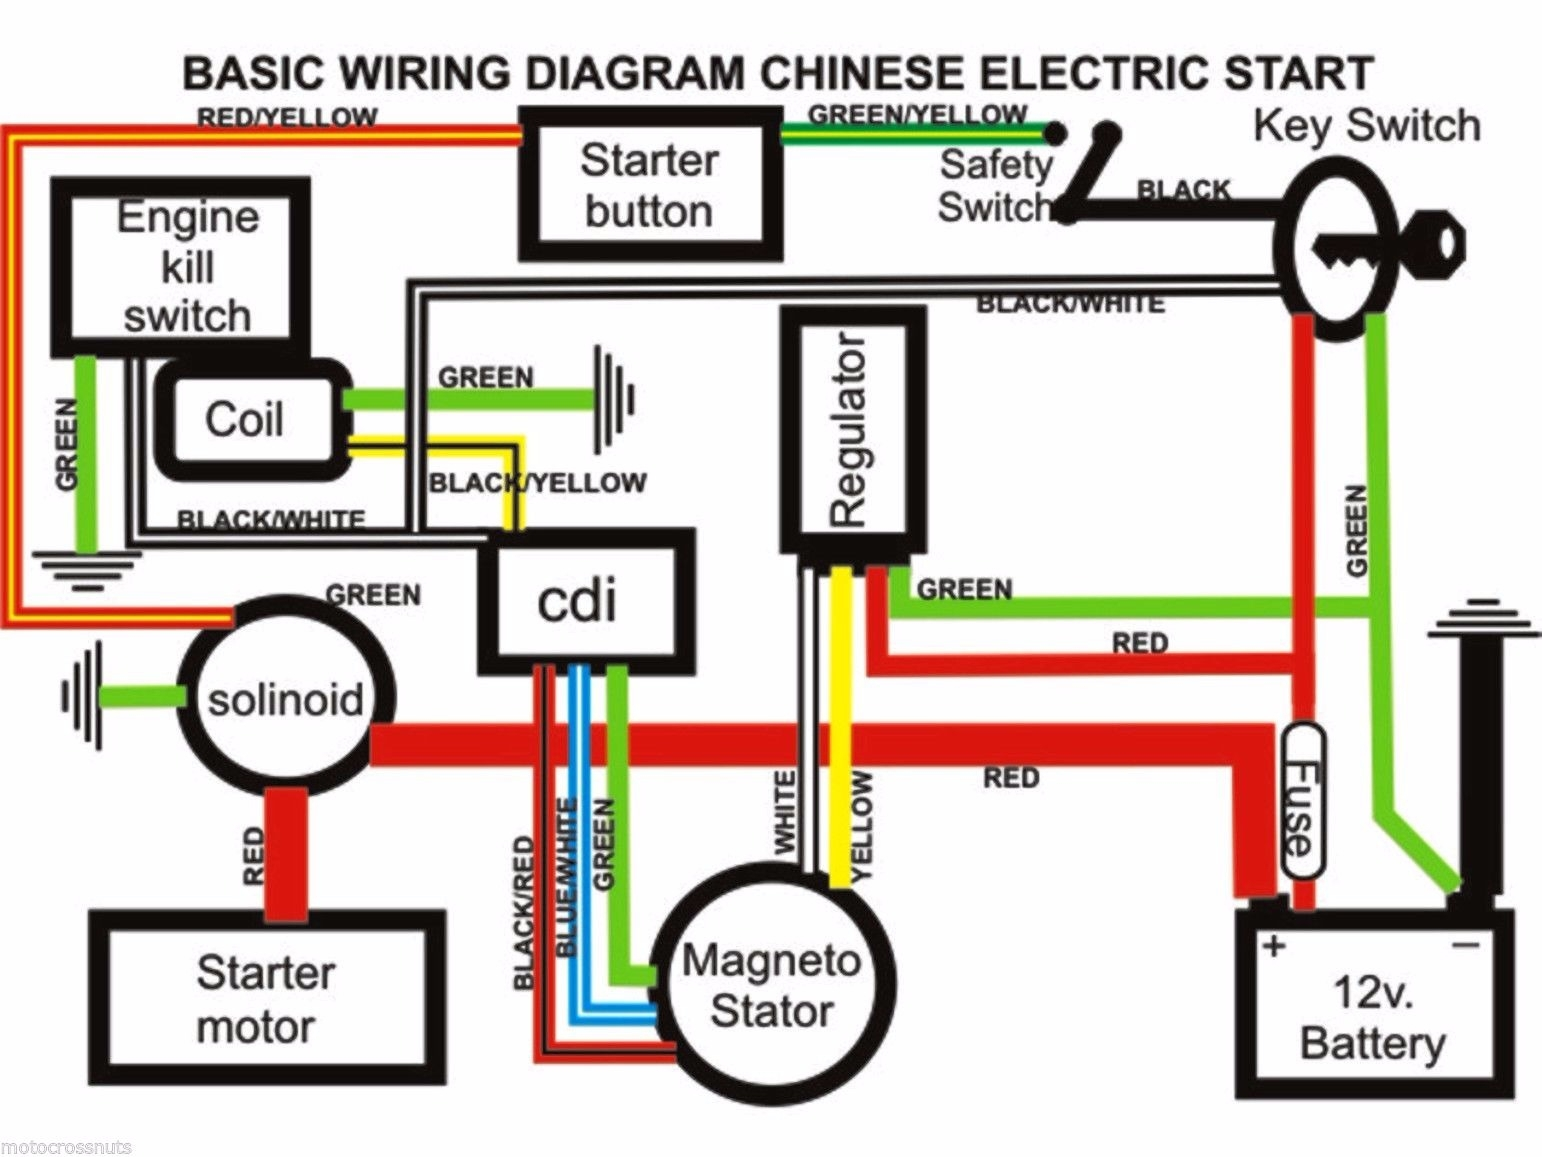 110 pit bike wiring diagram Download-110 Pit Bike Wiring Diagram 110cc Pit Bike Engine Diagram Inspirational Dune Buggy Wiring Schematic 19-c